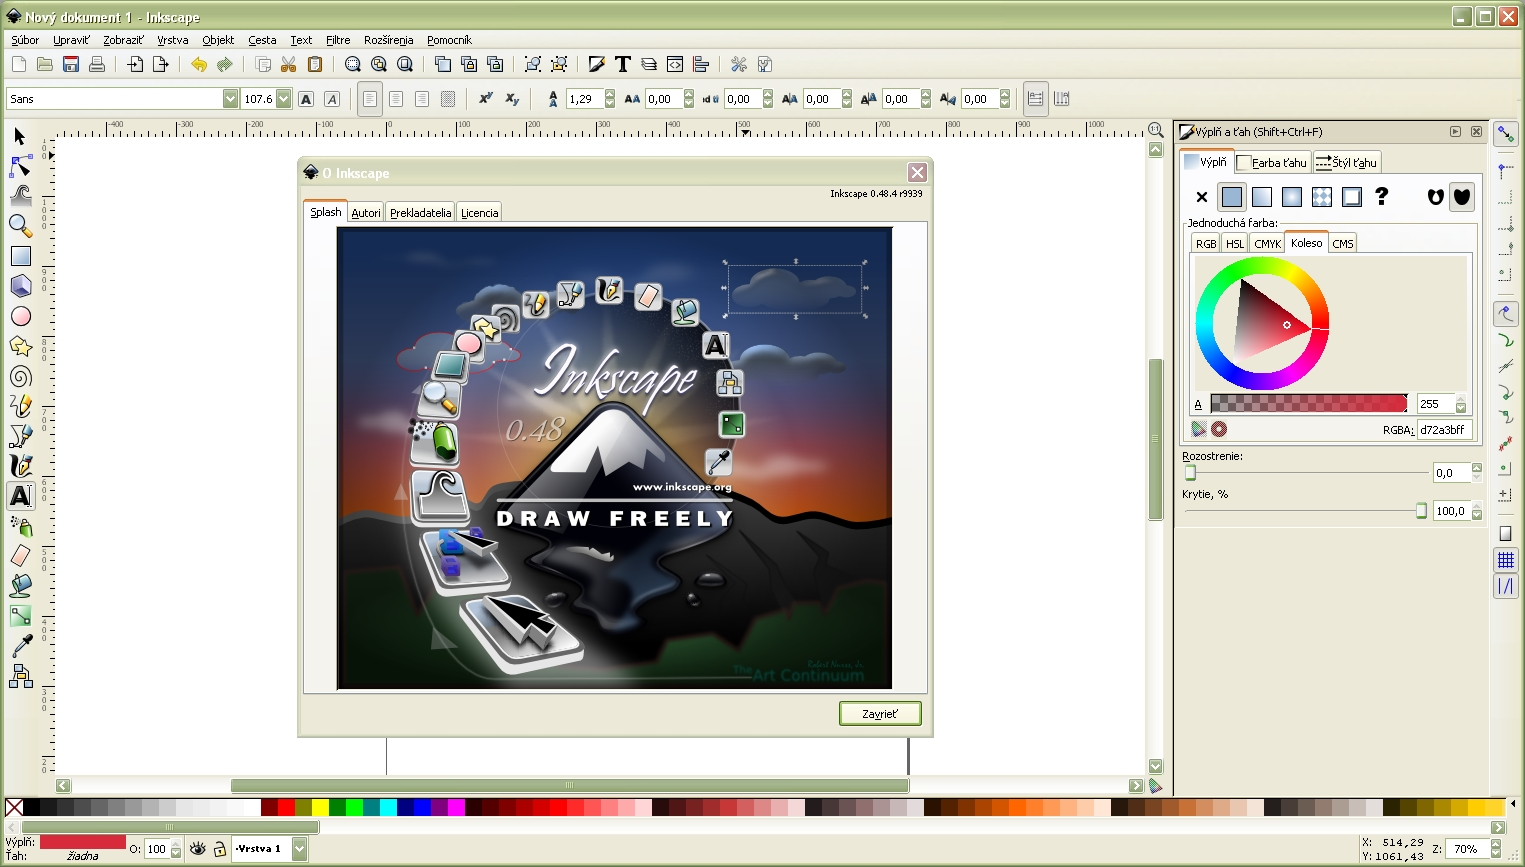 Download inkscape simplyget Inkscape software